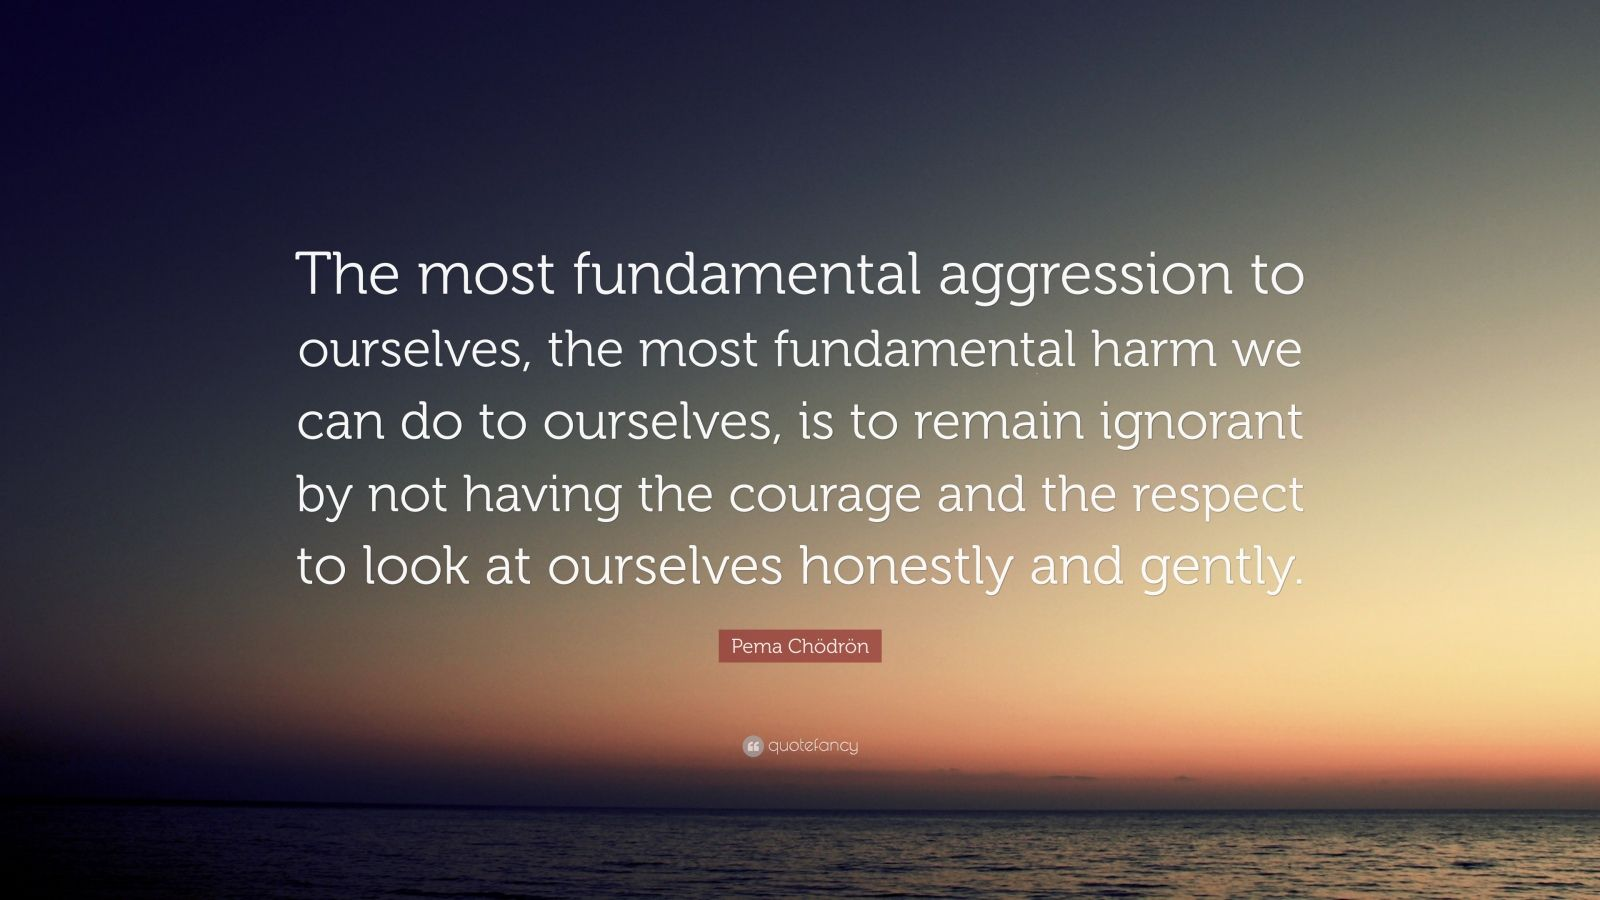 """Pema Chödrön Quote: """"The most fundamental aggression to ourselves, the most fundamental harm we can do to ourselves, is to remain ignorant by not having the courage and the respect to look at ourselves honestly and gently."""""""